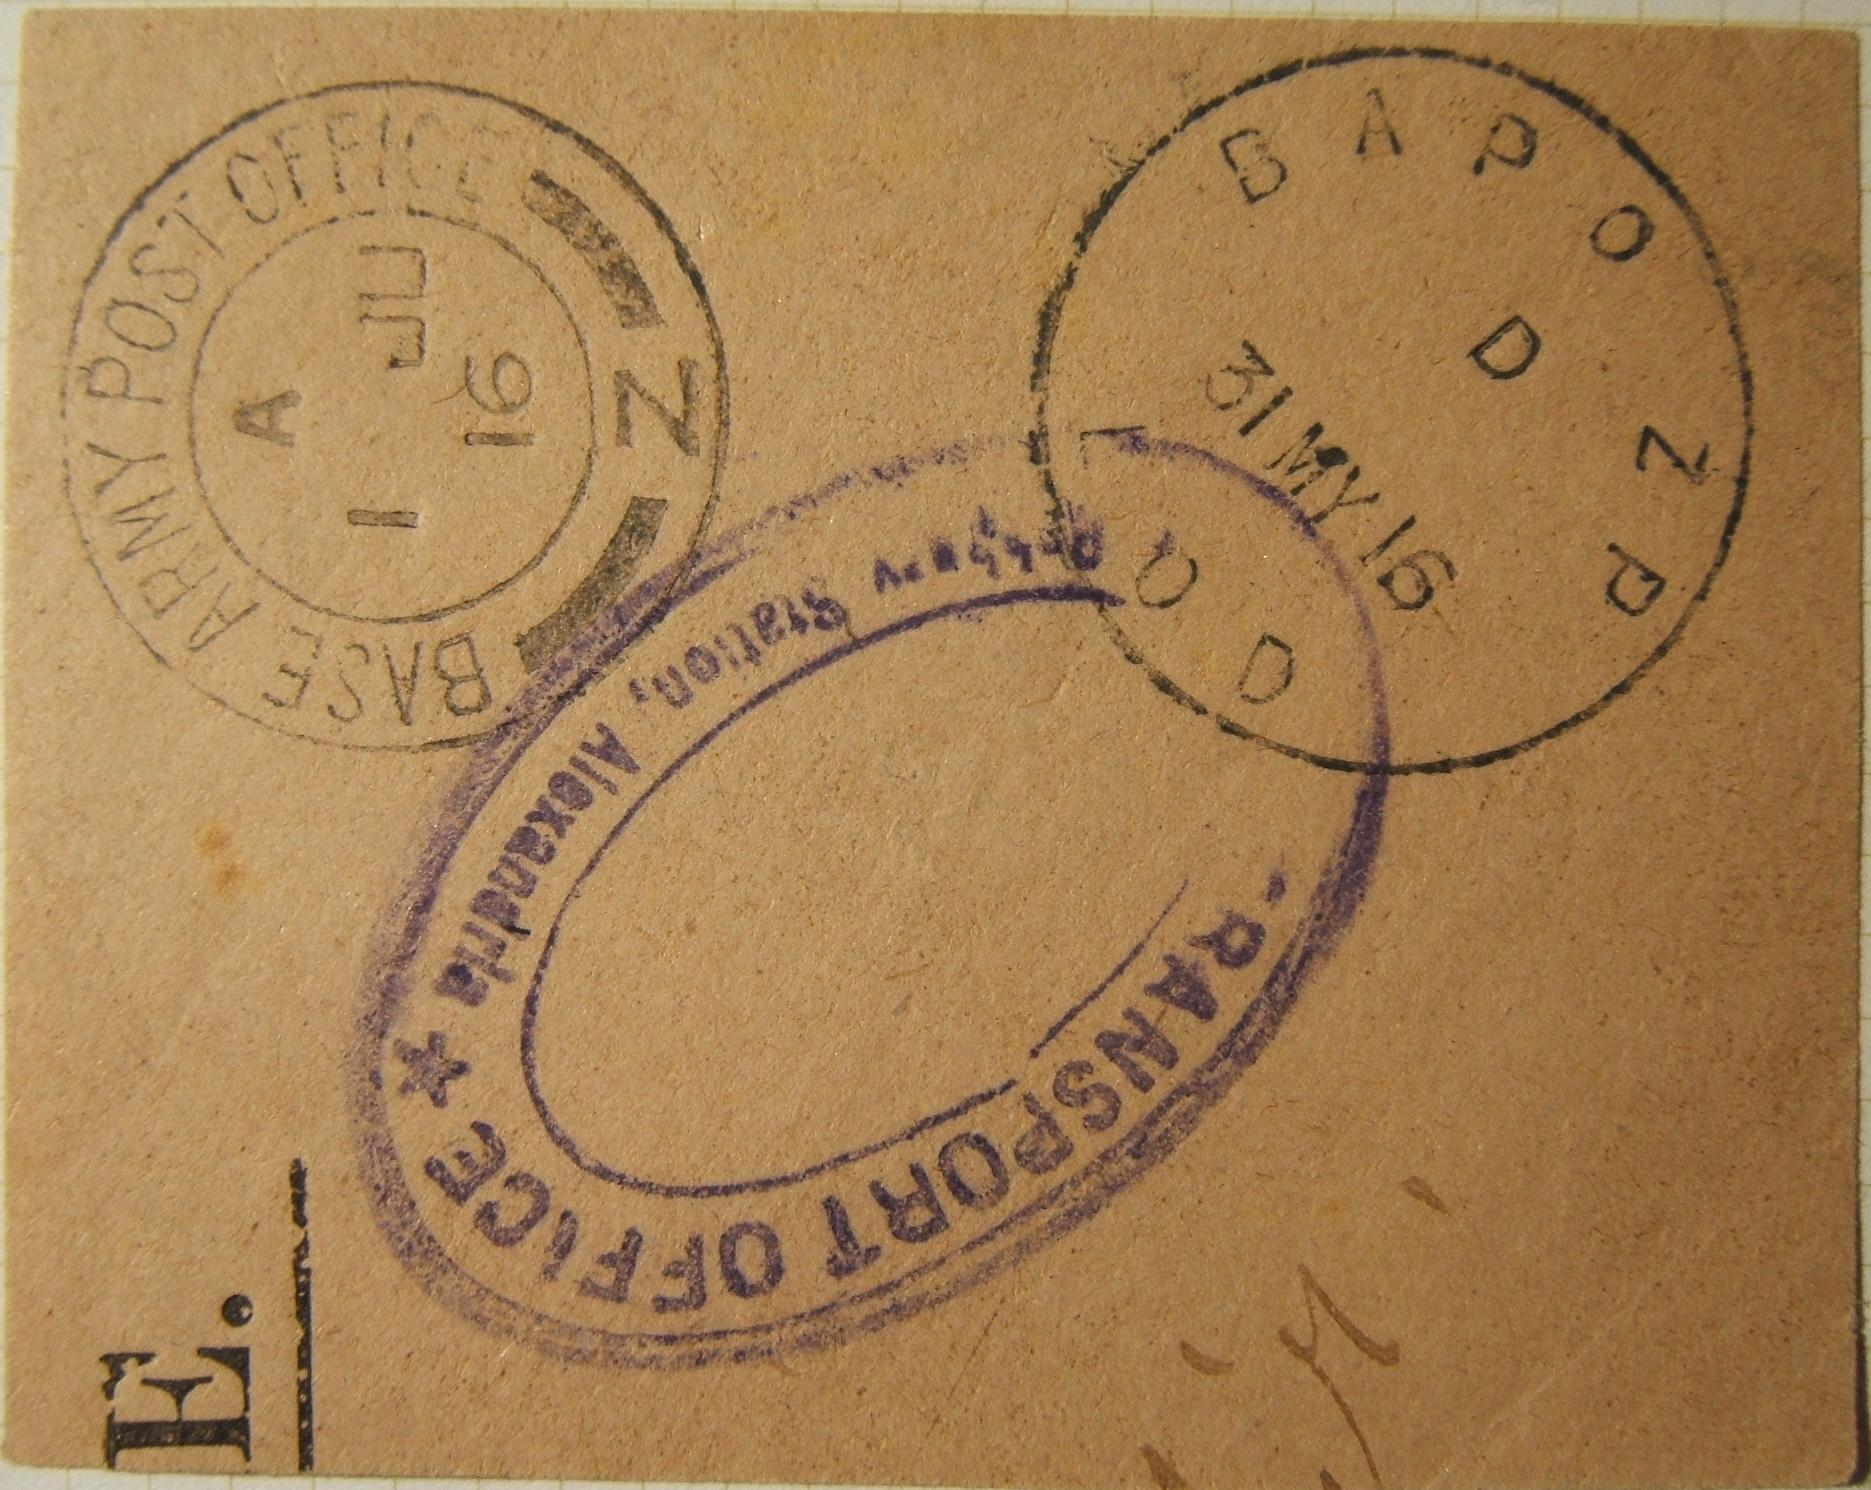 British WWI military mail in Egypt: 31 MY 1916 full strike of skeleton single dateline BAPO ZP LOD (local office delivery; ALEXANDRIA) pmk - unlisted in Proud, Sacher, KC & Firebra